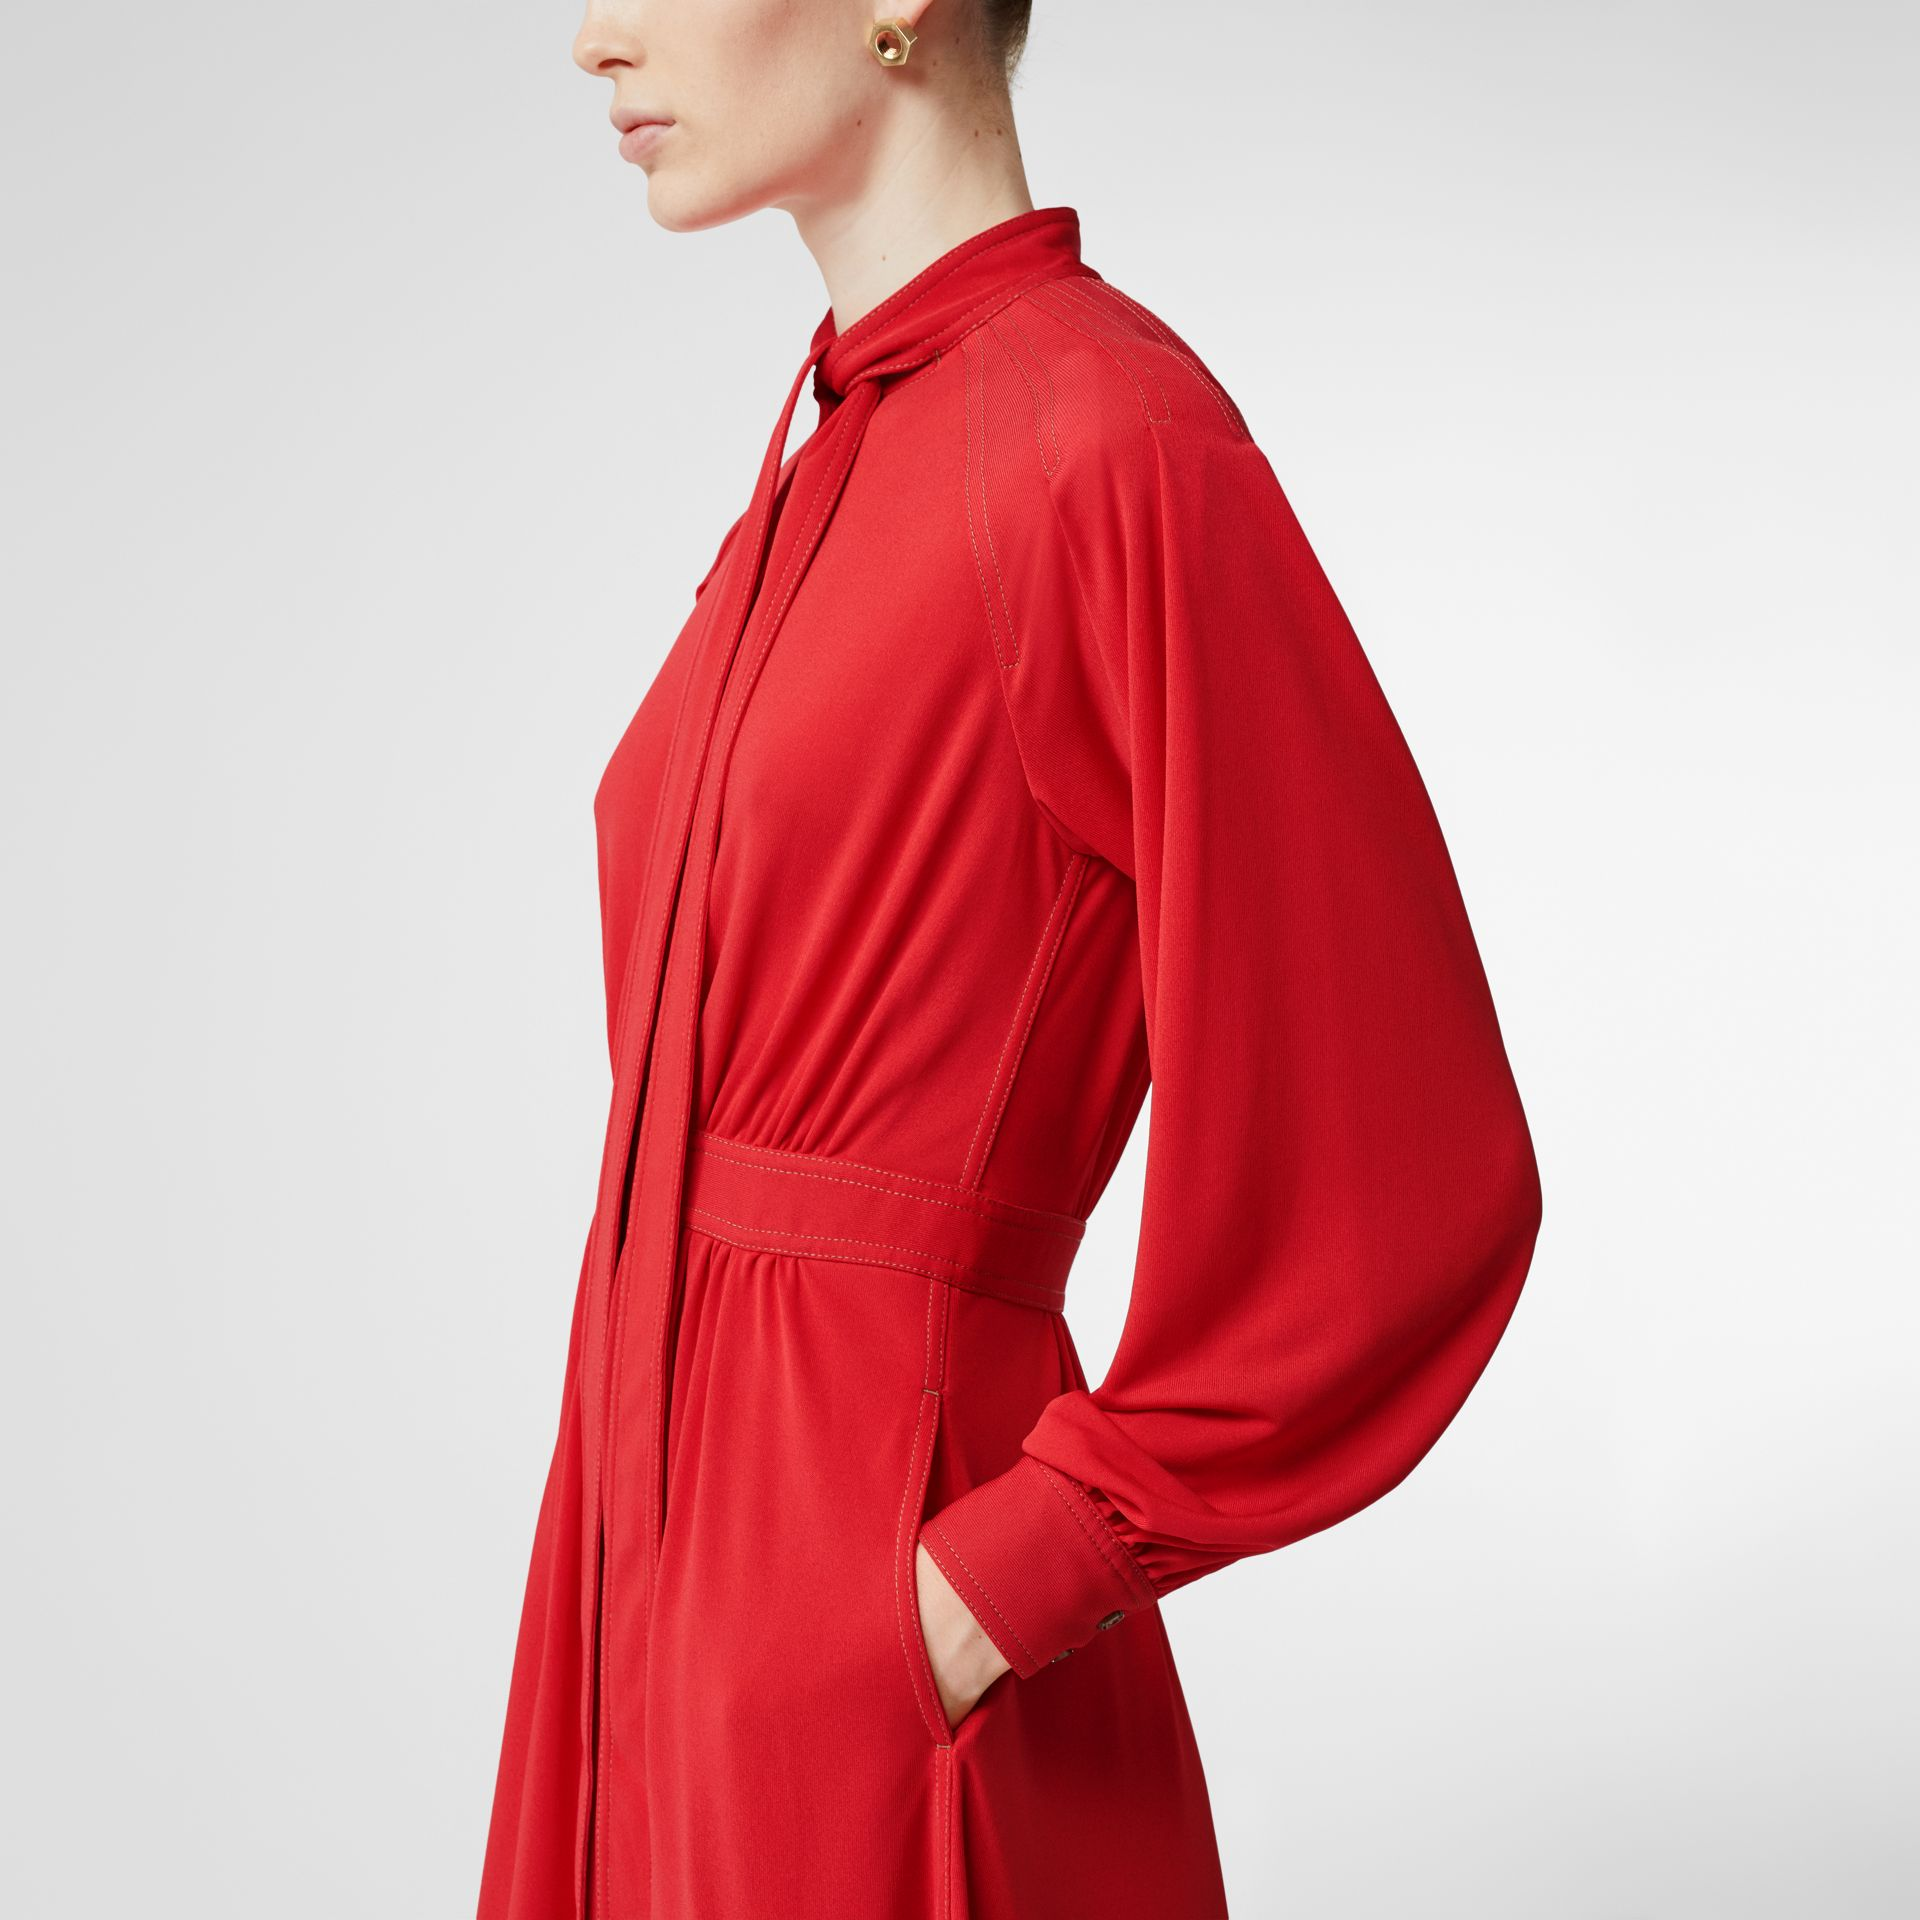 Topstitch Detail Jersey Tie-neck Dress in Bright Red - Women | Burberry Australia - gallery image 1